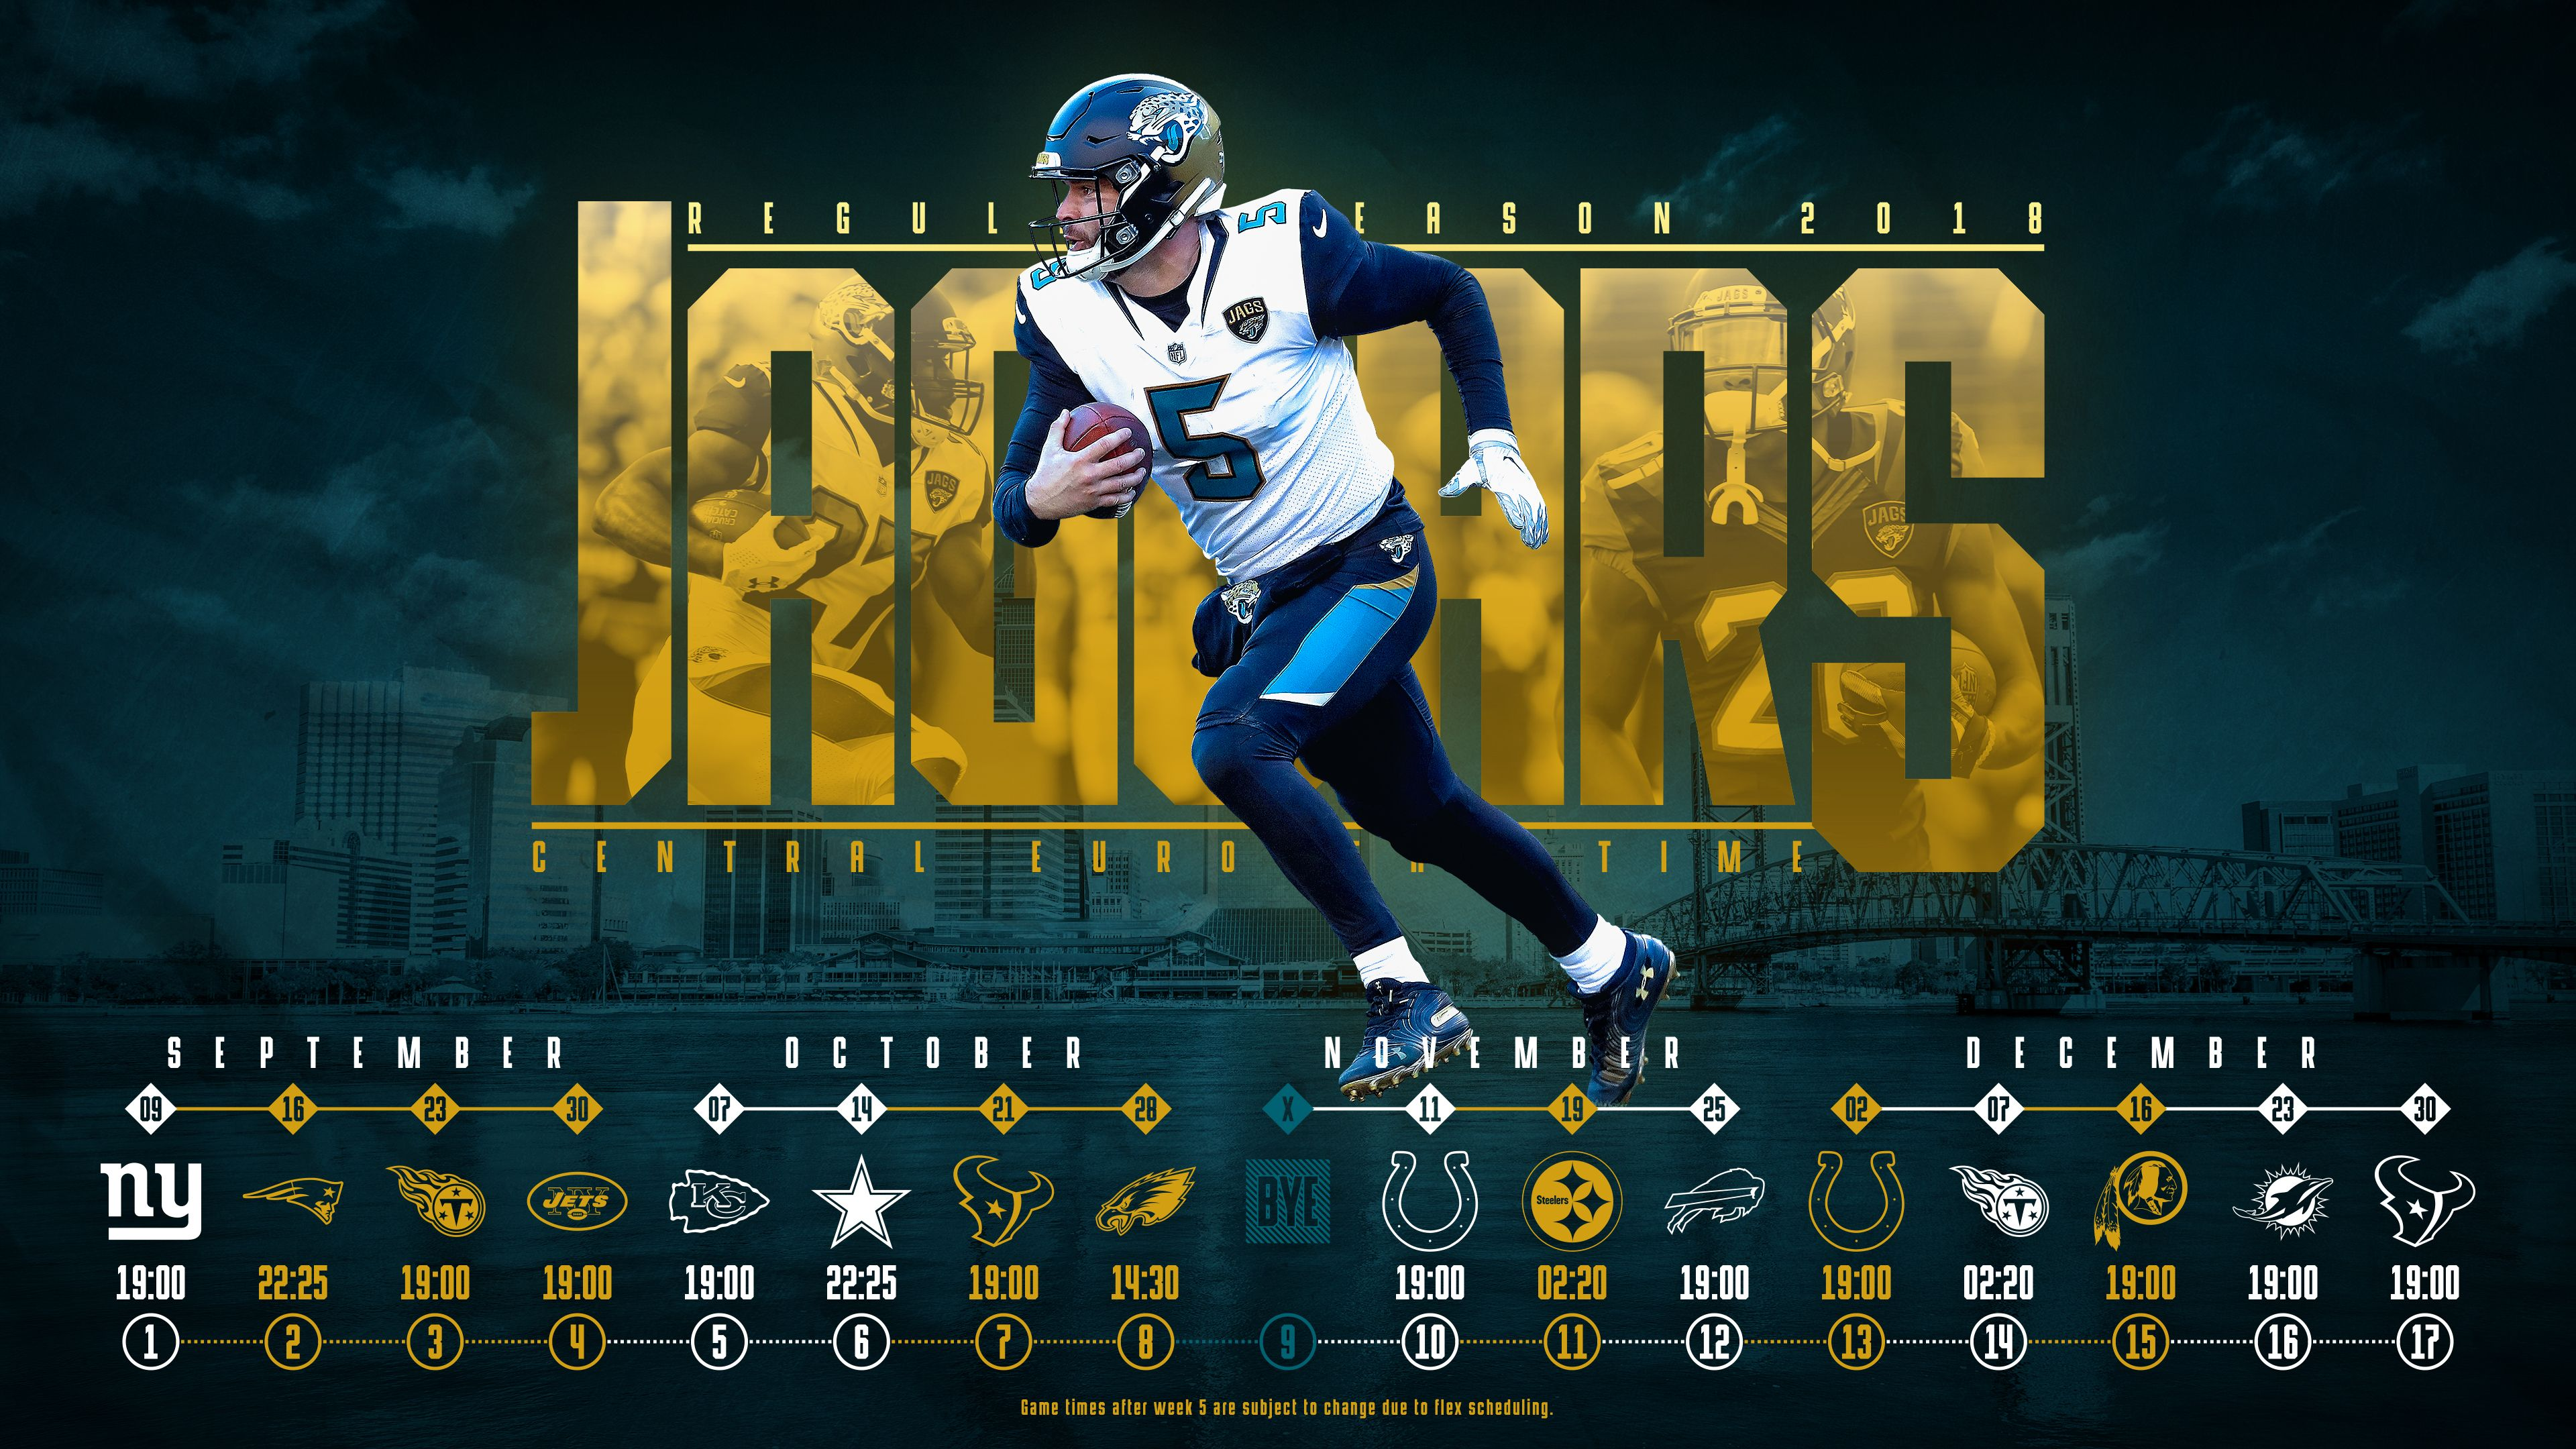 21] Jacksonville Jaguars 2018 Wallpapers on WallpaperSafari 3840x2160